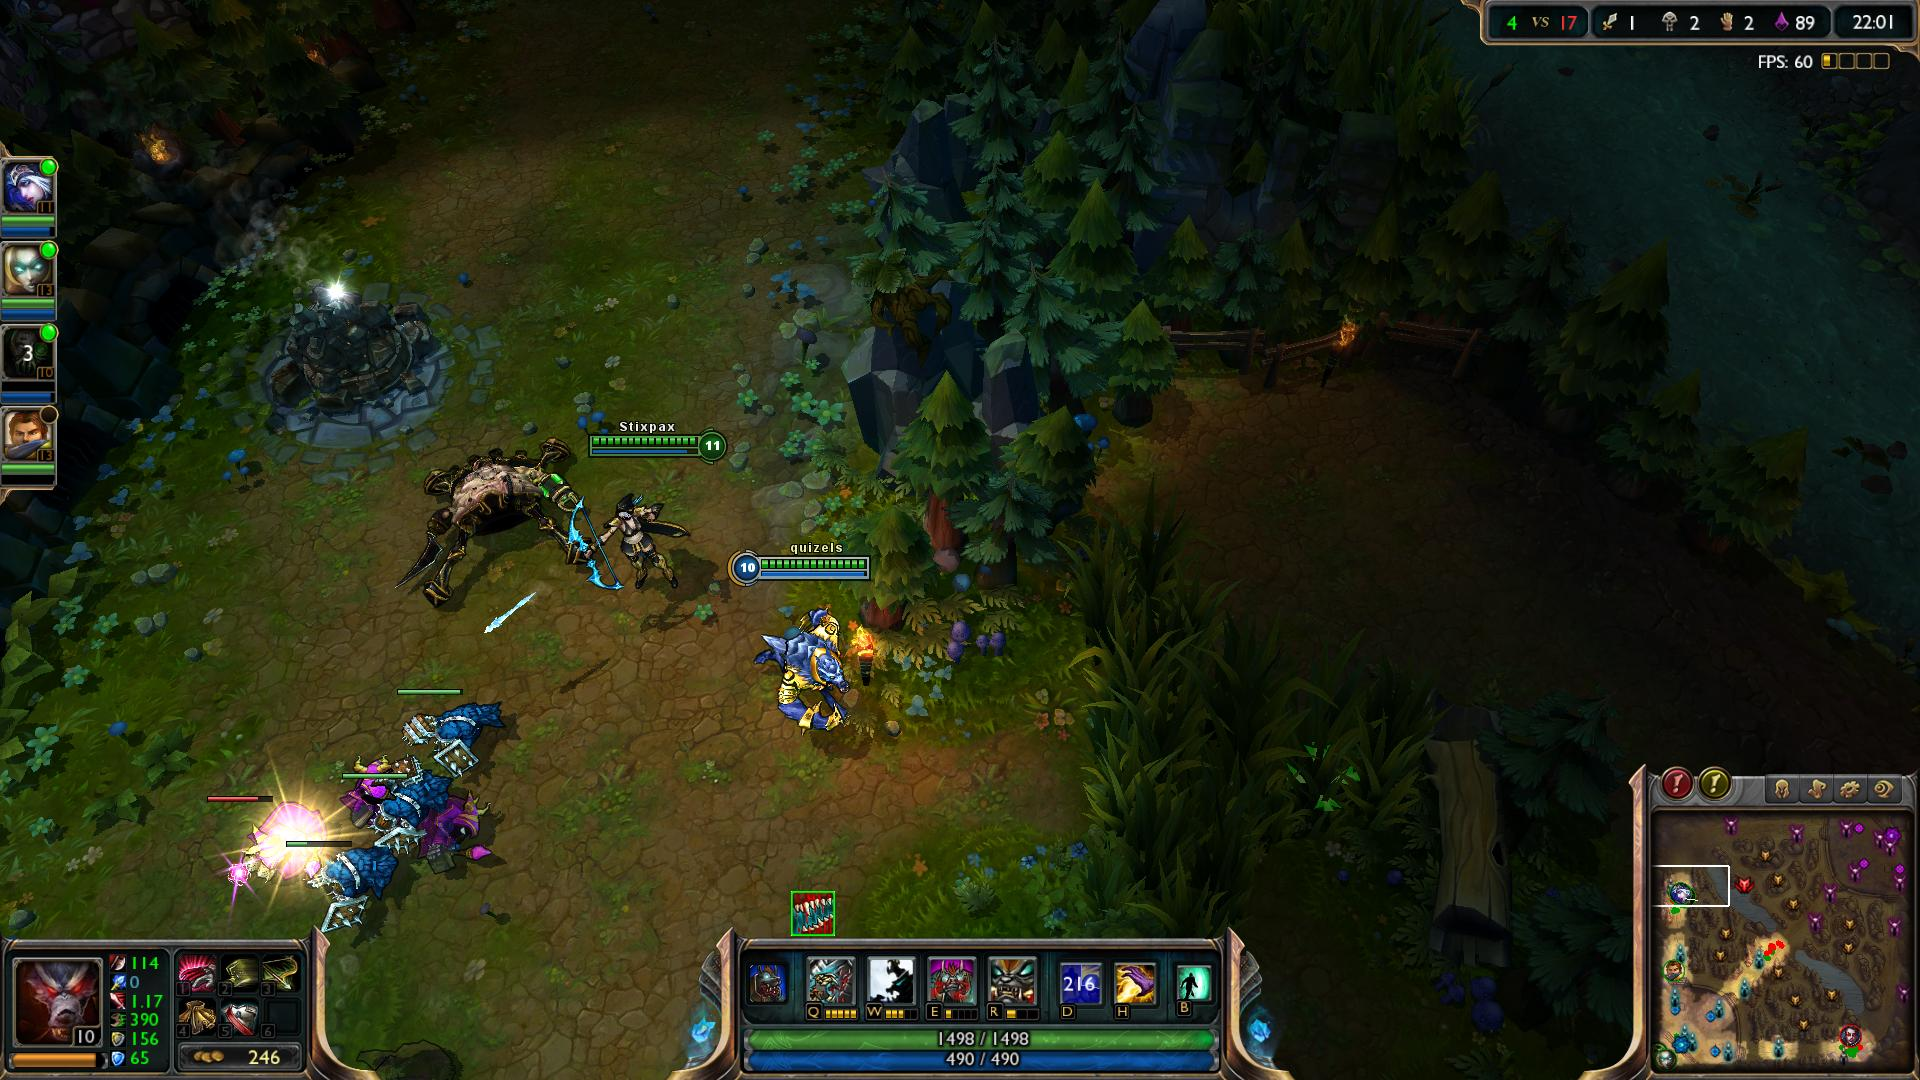 Warwick League of Legends lol screenshot